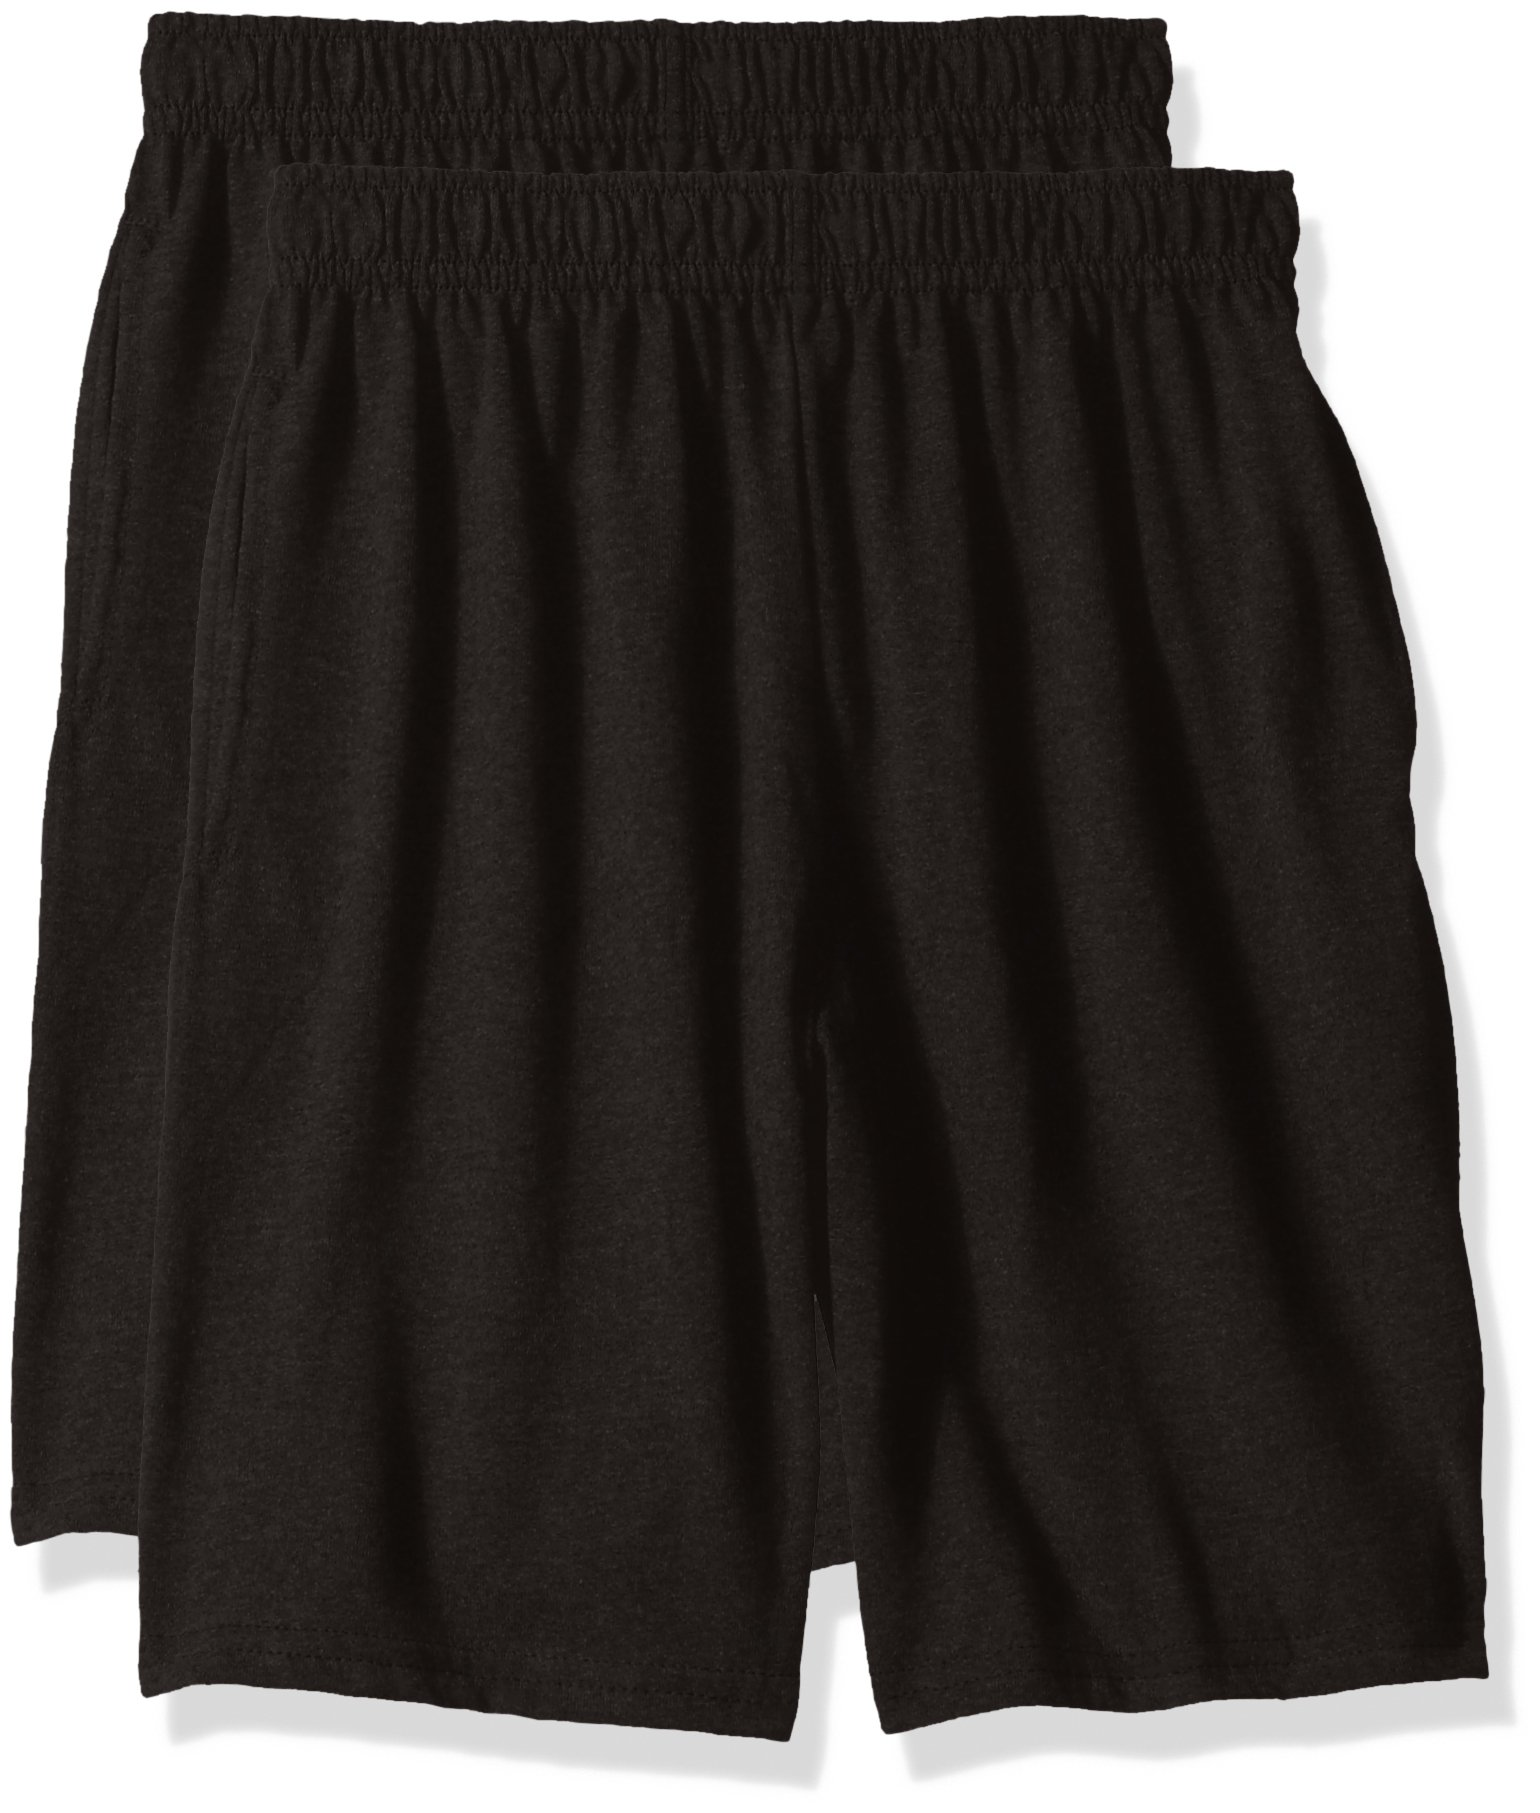 Hanes Big Boys' Jersey Short (Pack of 2), Black, L